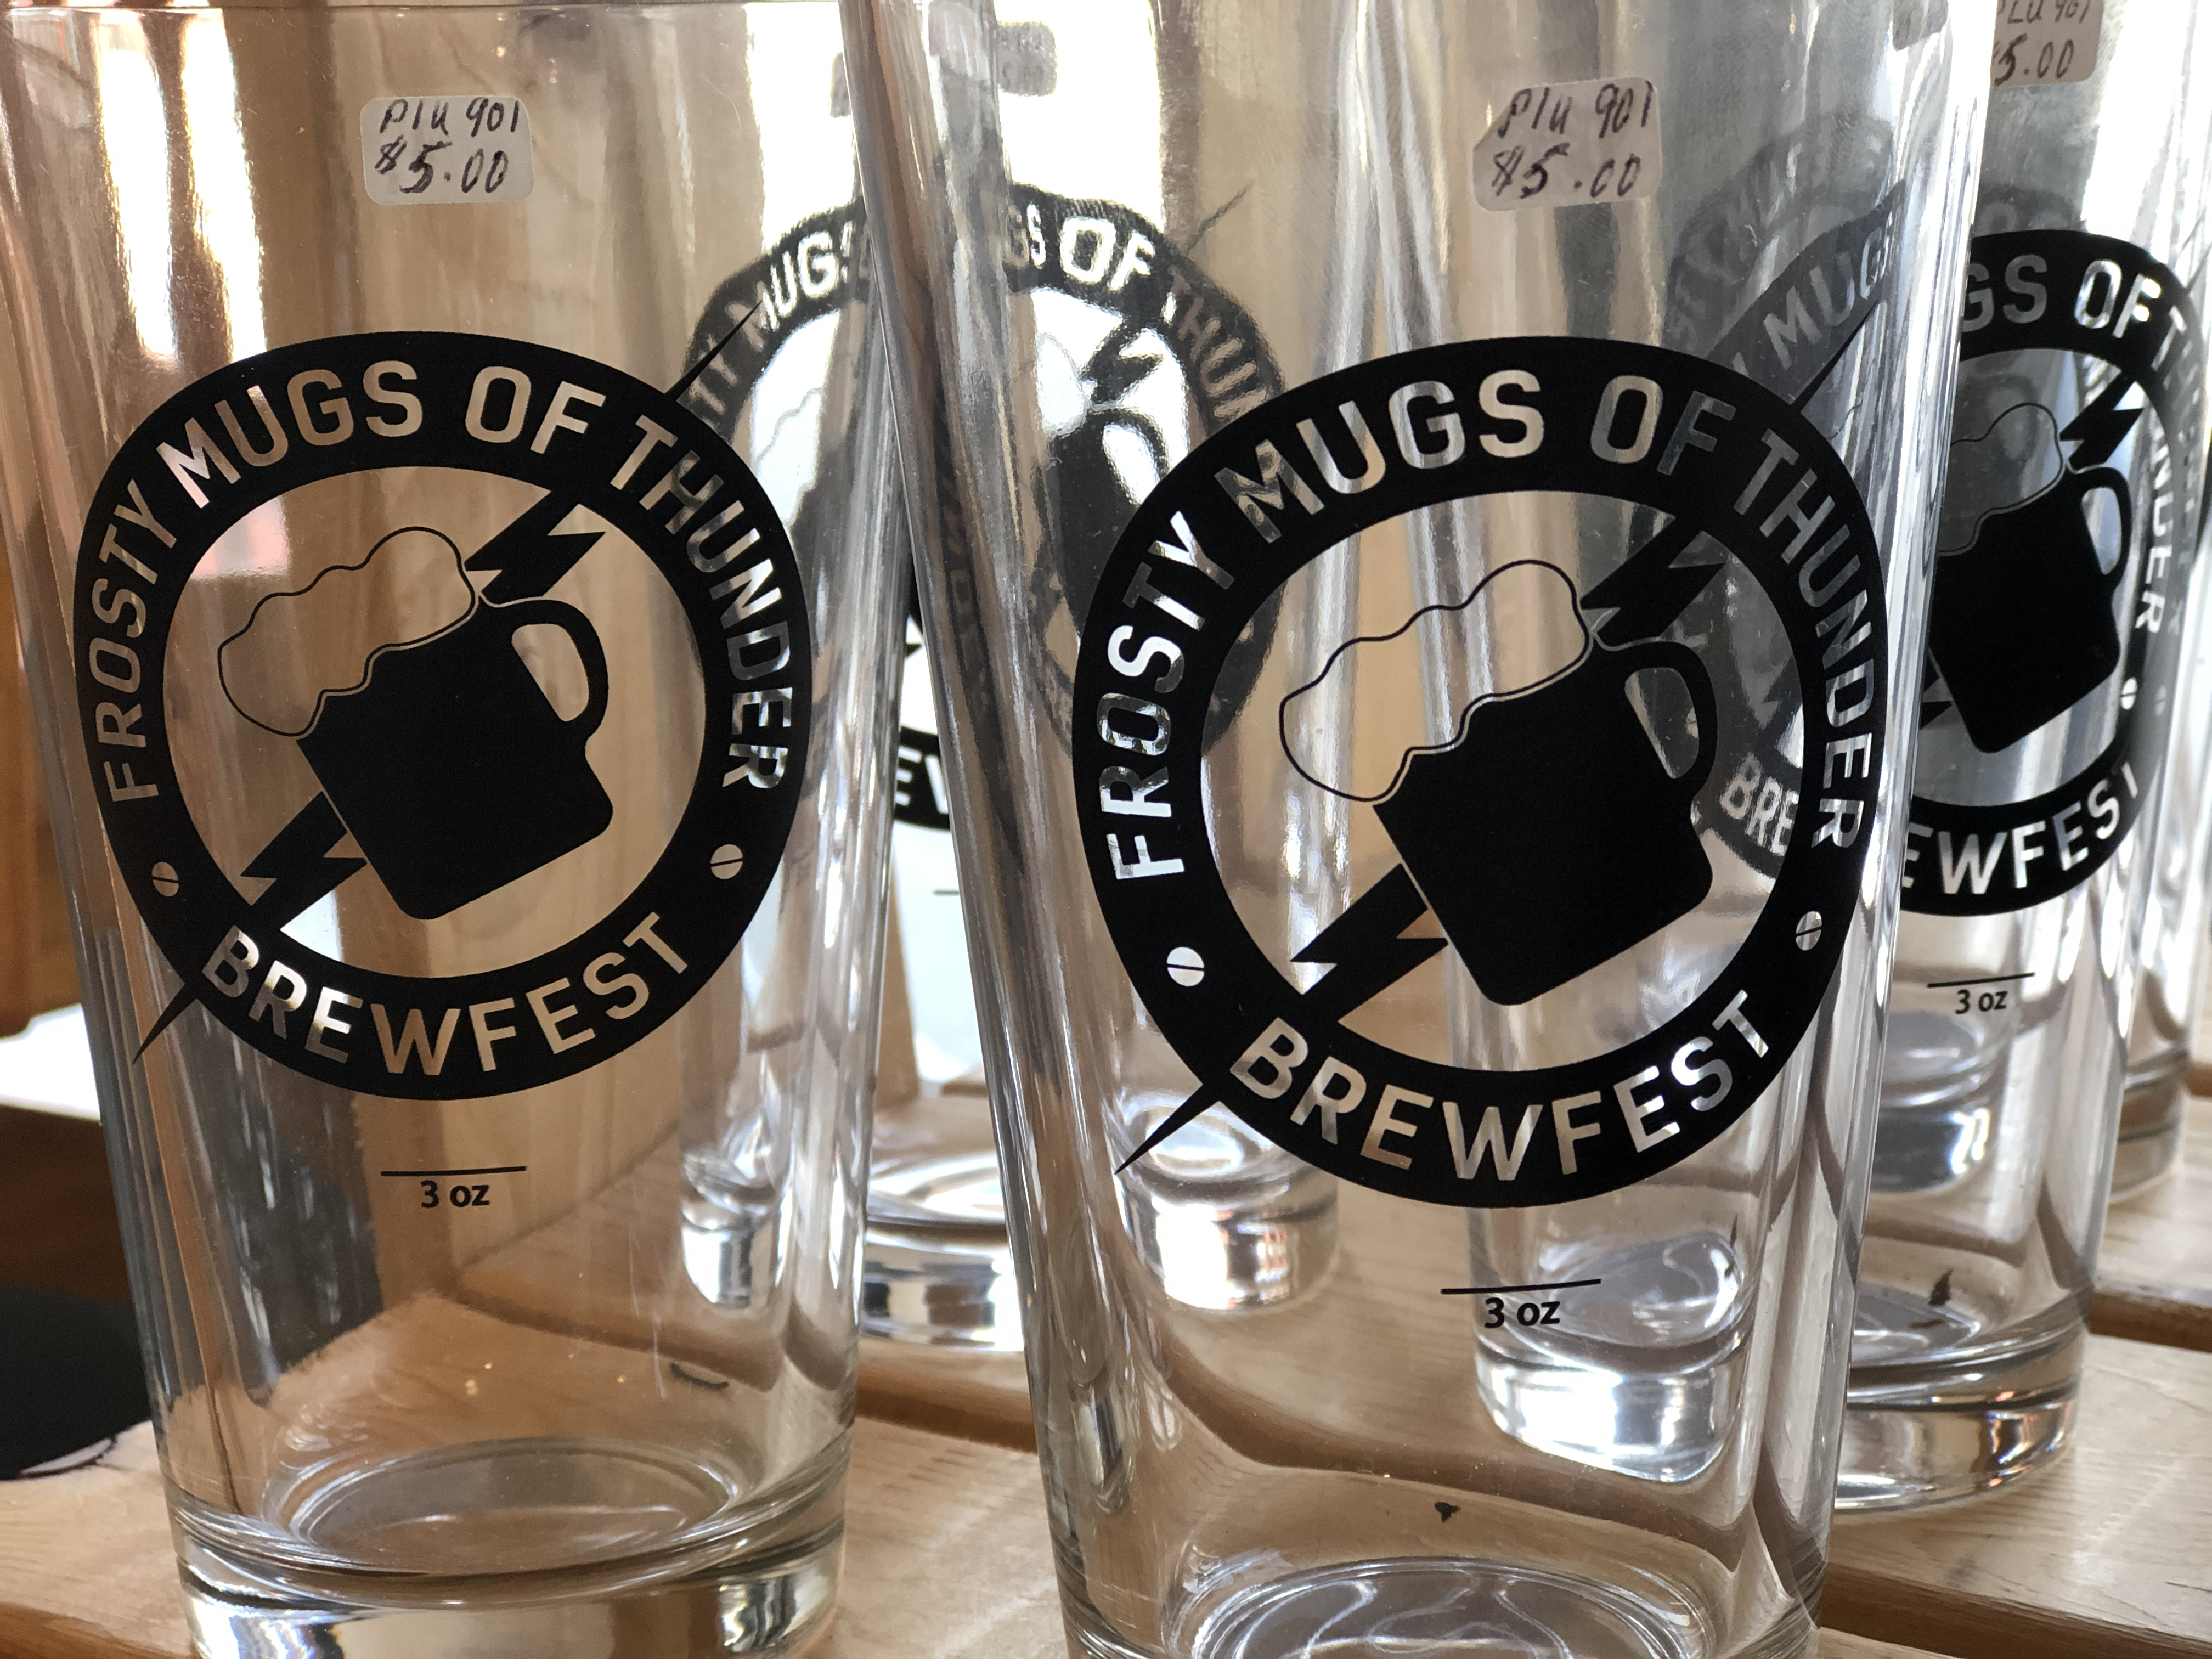 2019 Frosty Mugs of Thunder Brewfest